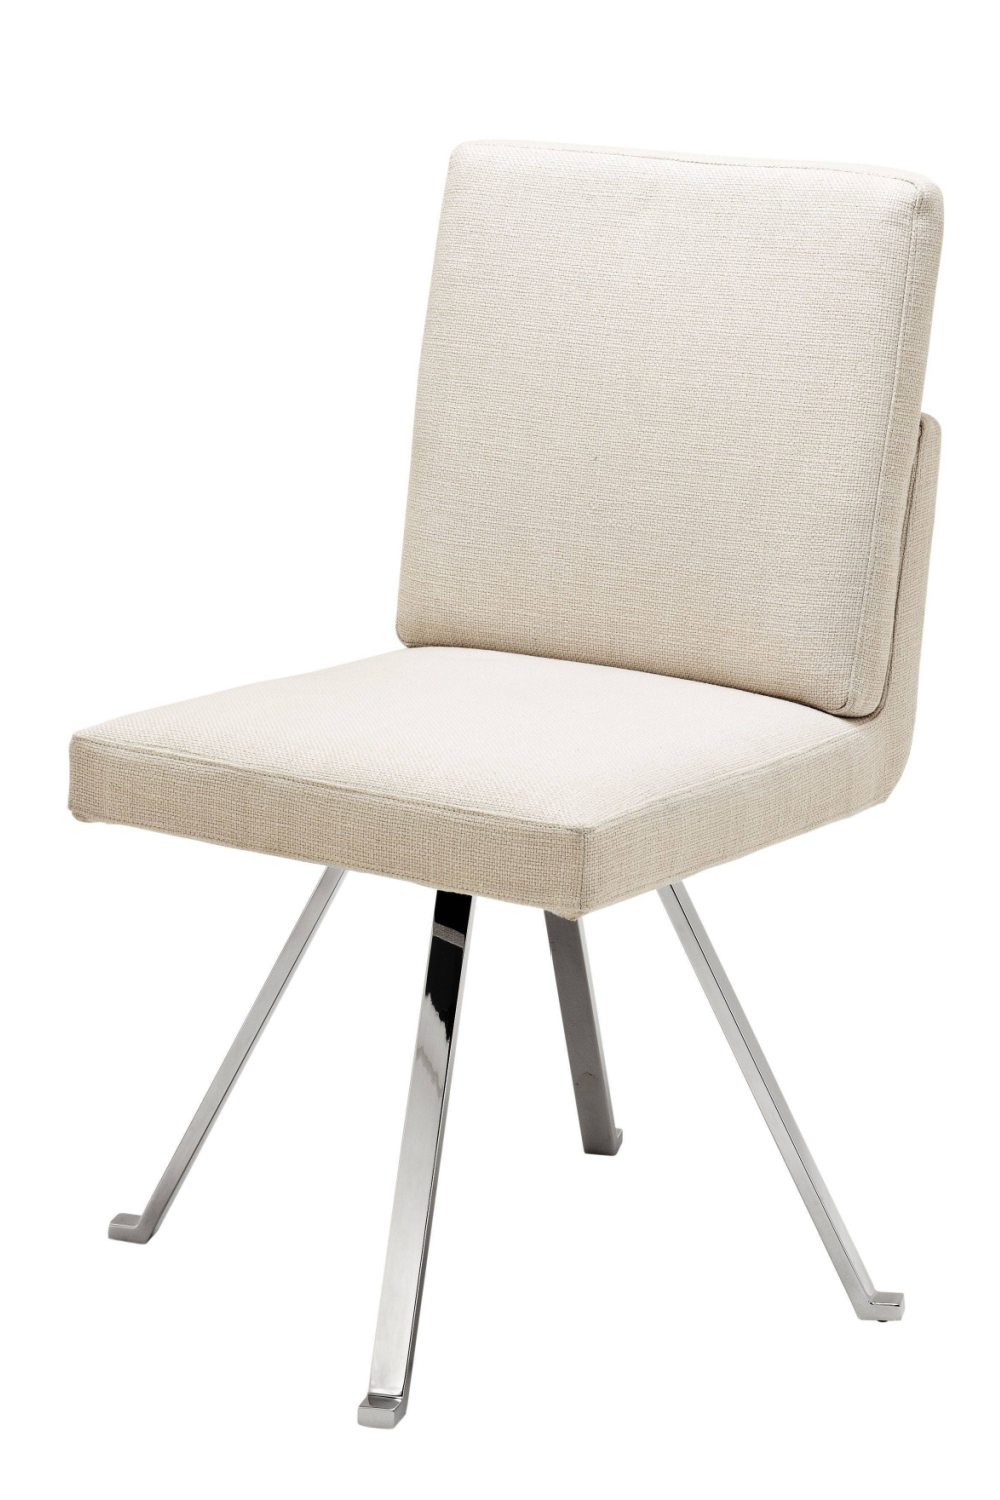 Beige Swivel Dining Chair | Eichholtz Dirand